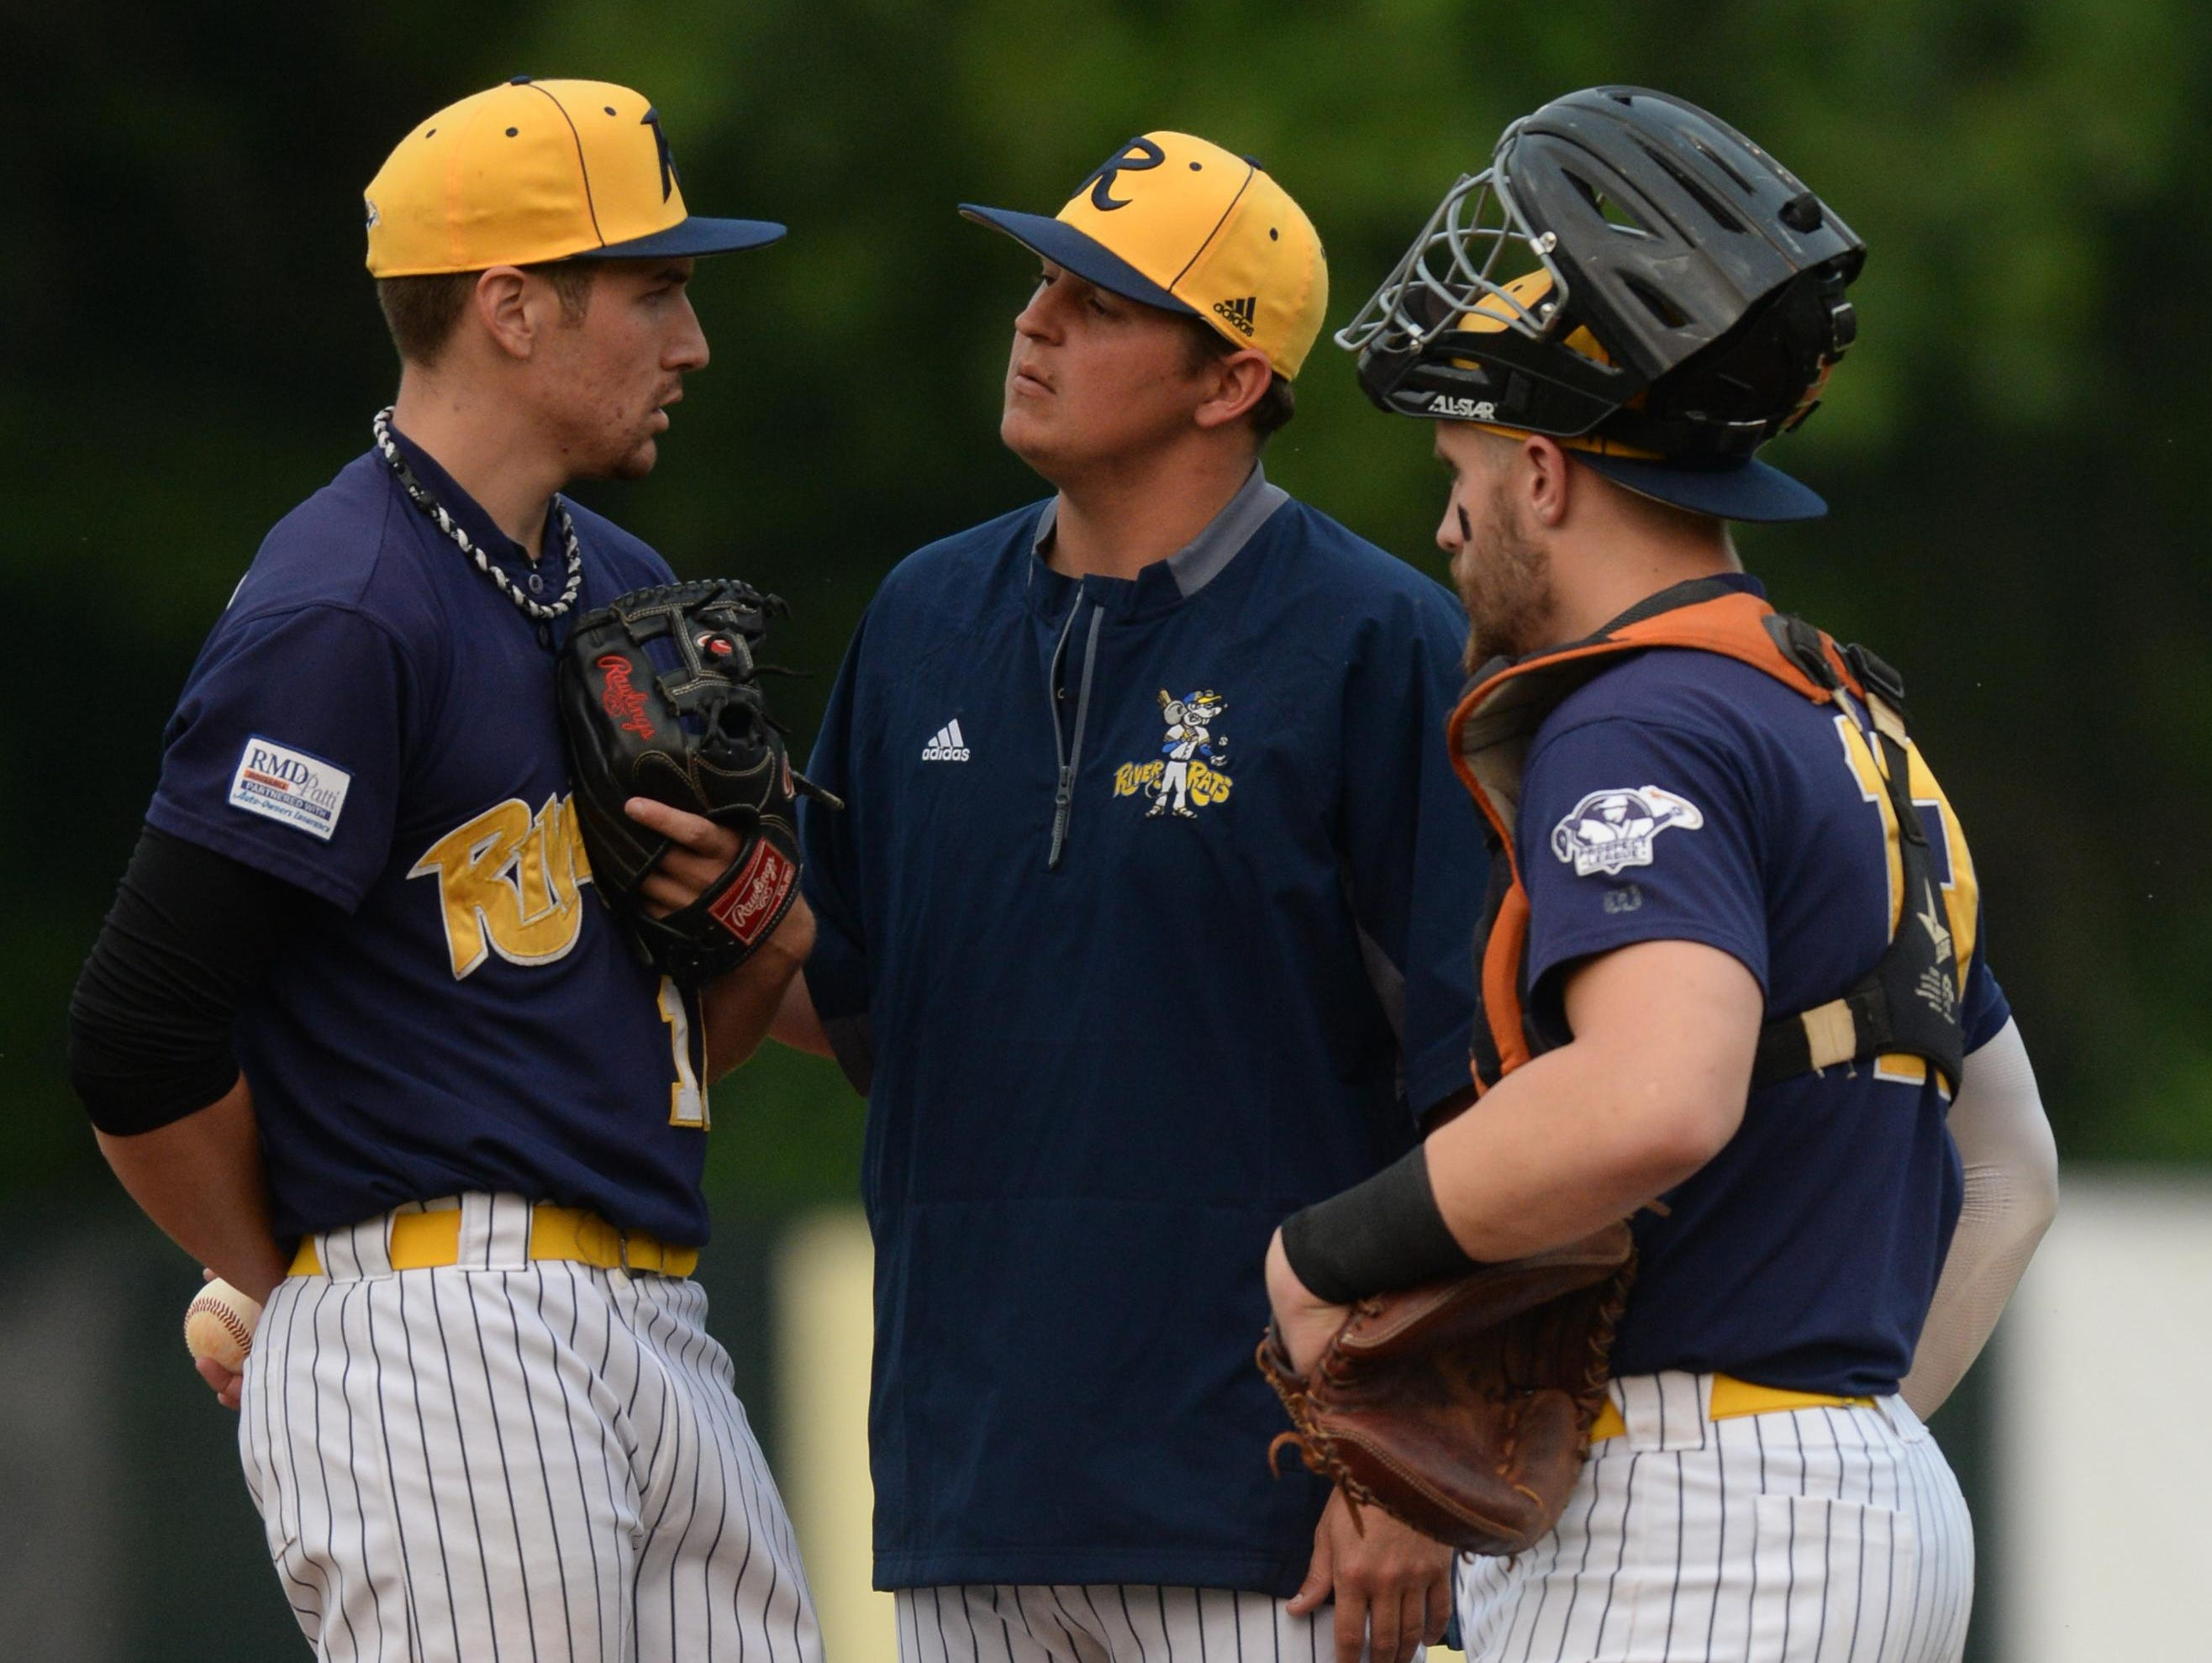 Richmond RiverRat assistant coach Patrick Flanagan talks to pitcher Joe Pourier, left, with catcher Brian Hakes during a game last month. Flanagan was hired recently as Eaton's new varsity baseball coach.